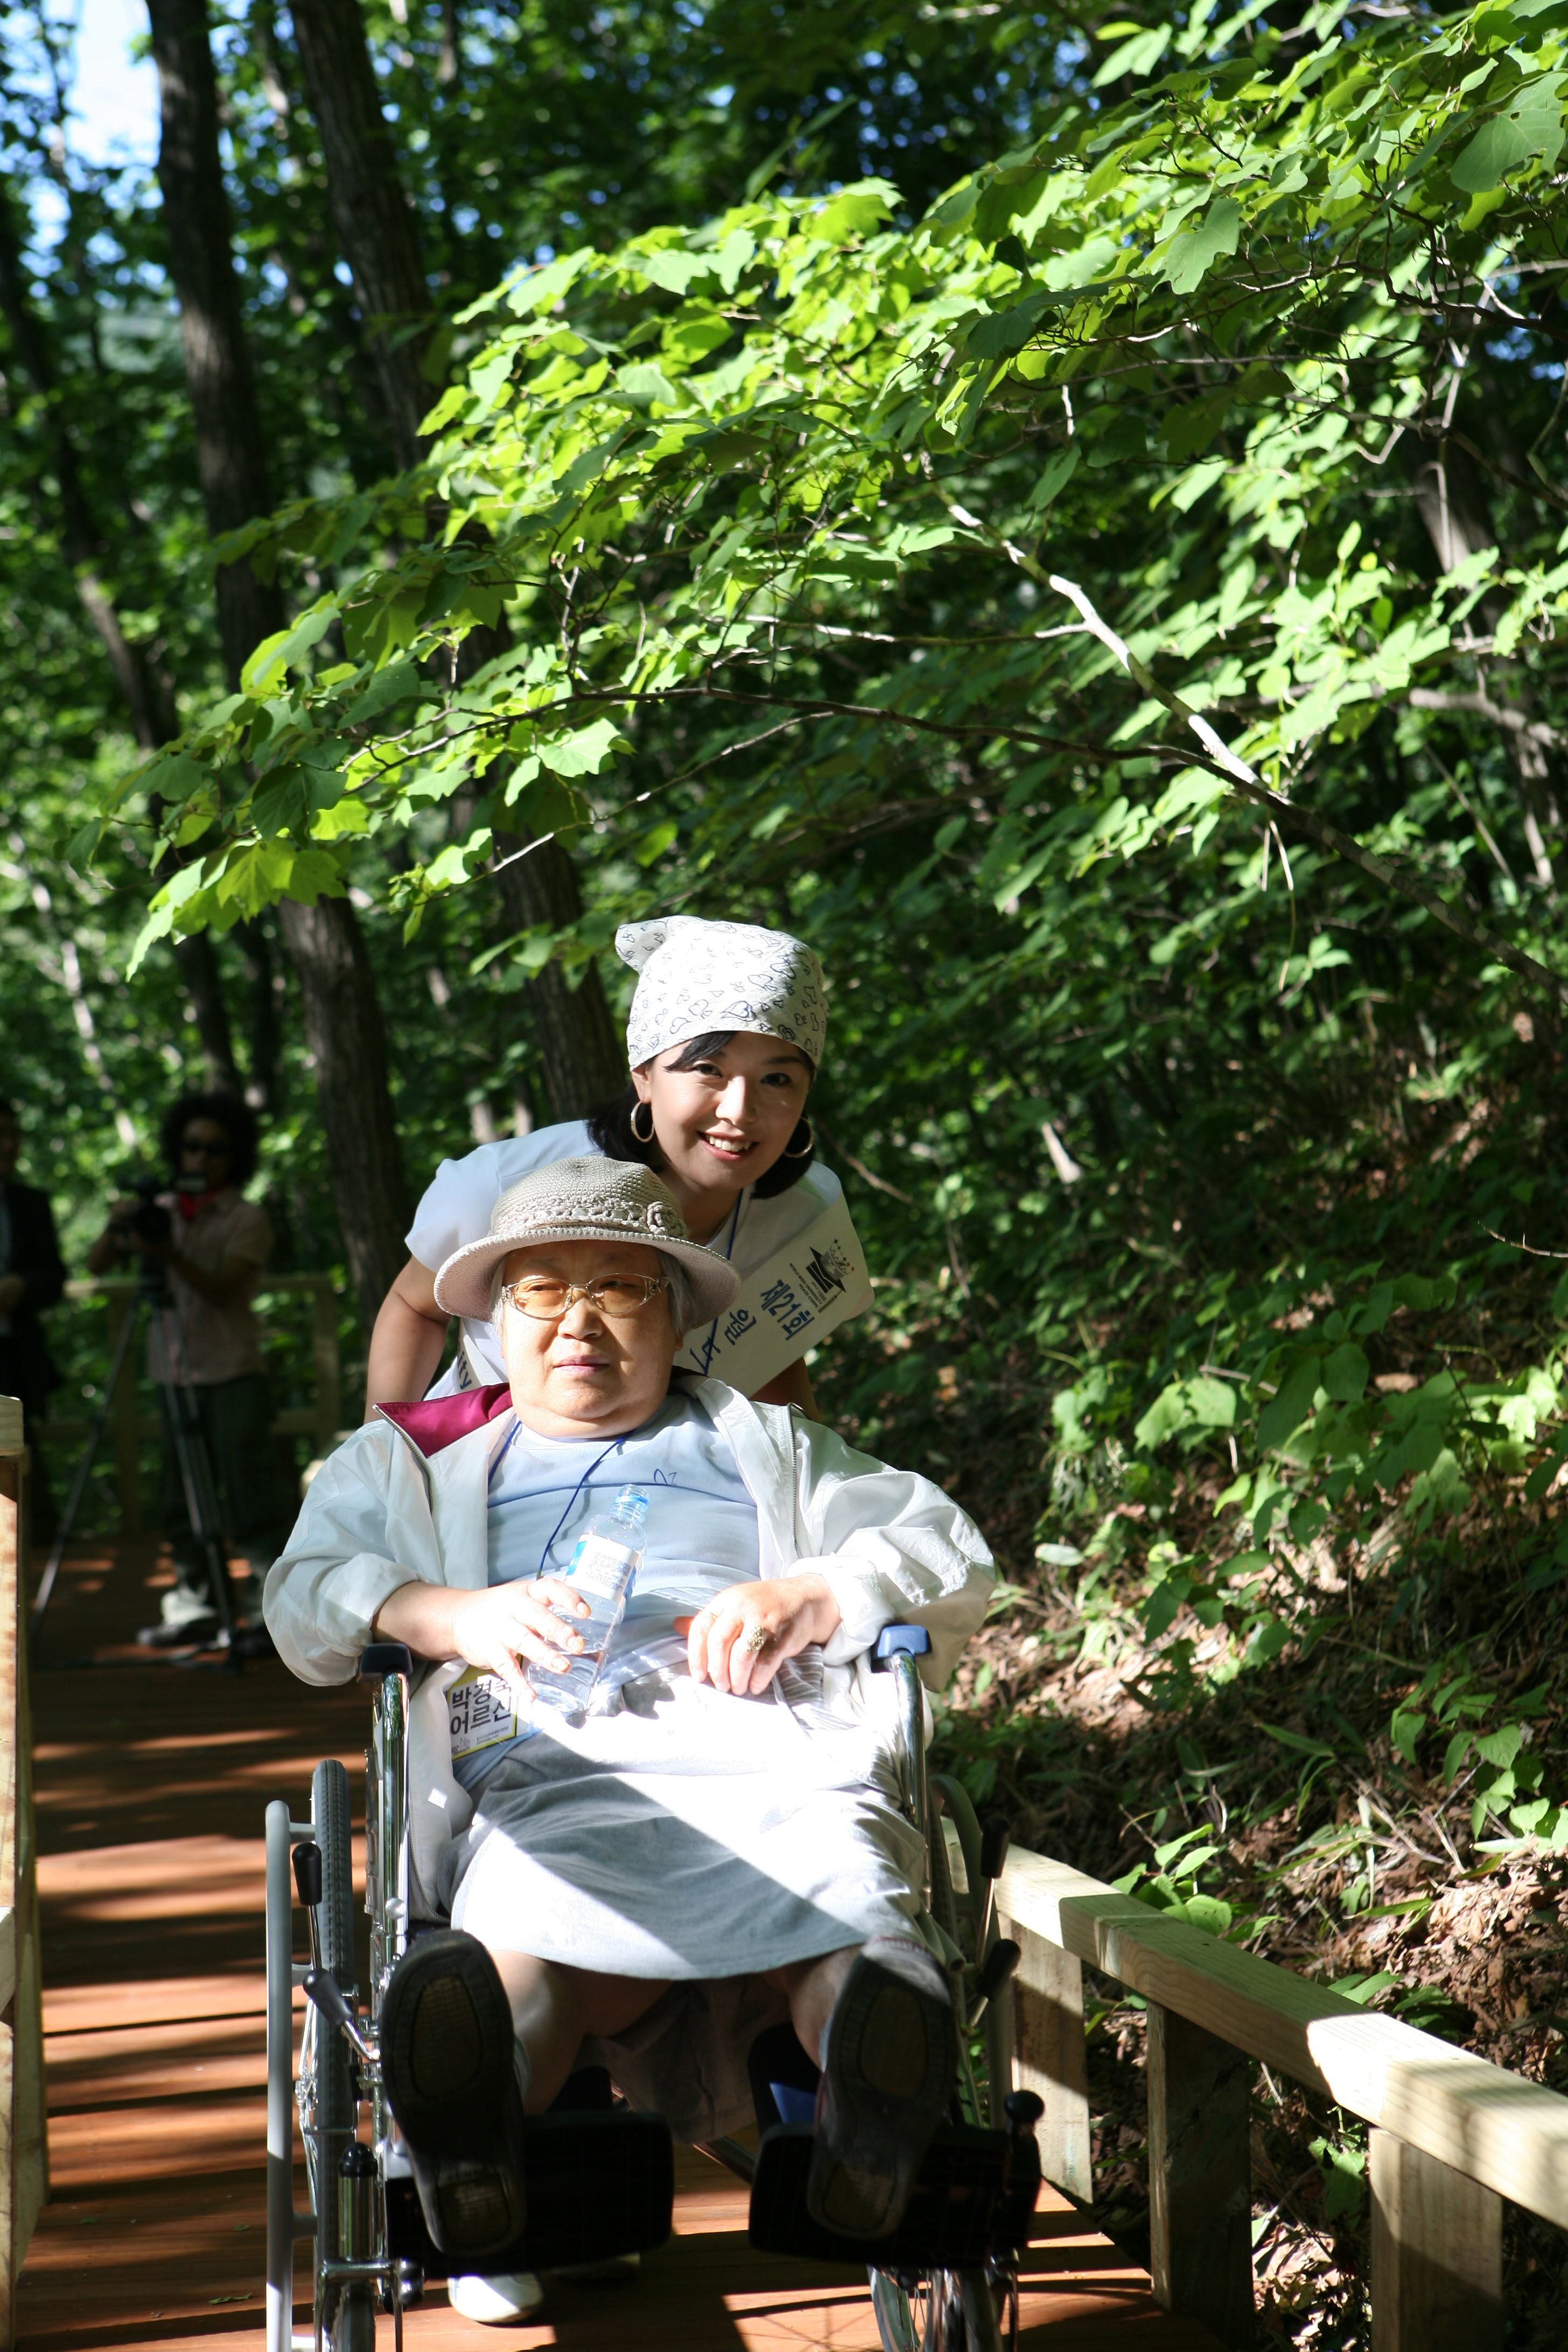 Volunteering with the elderly living alone in the forest